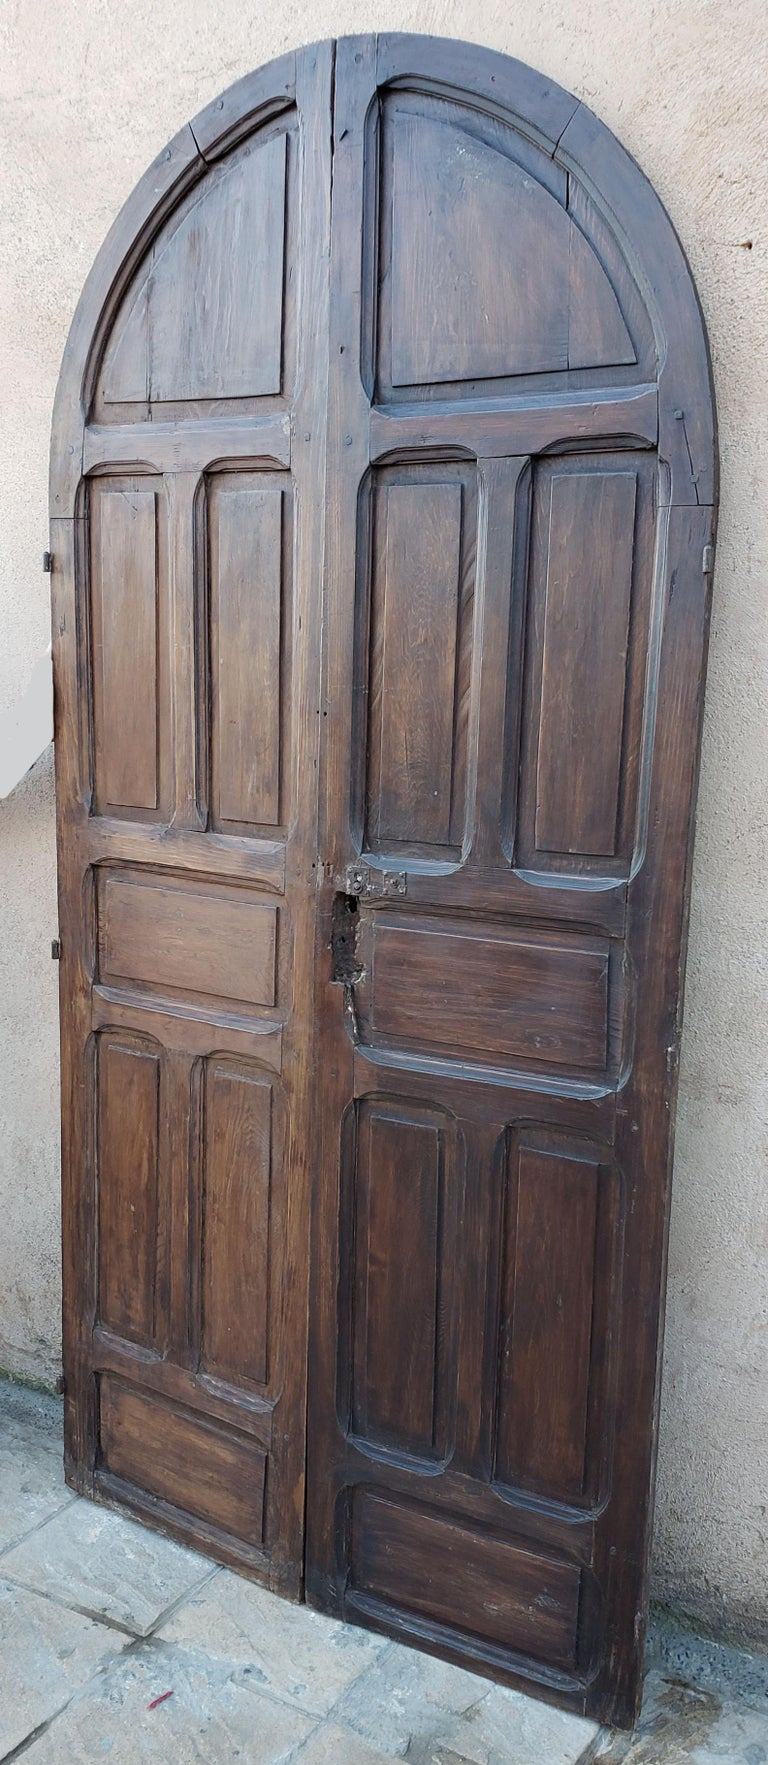 Double Panel Arched Moroccan Wooden Door, 23ND34 For Sale 1